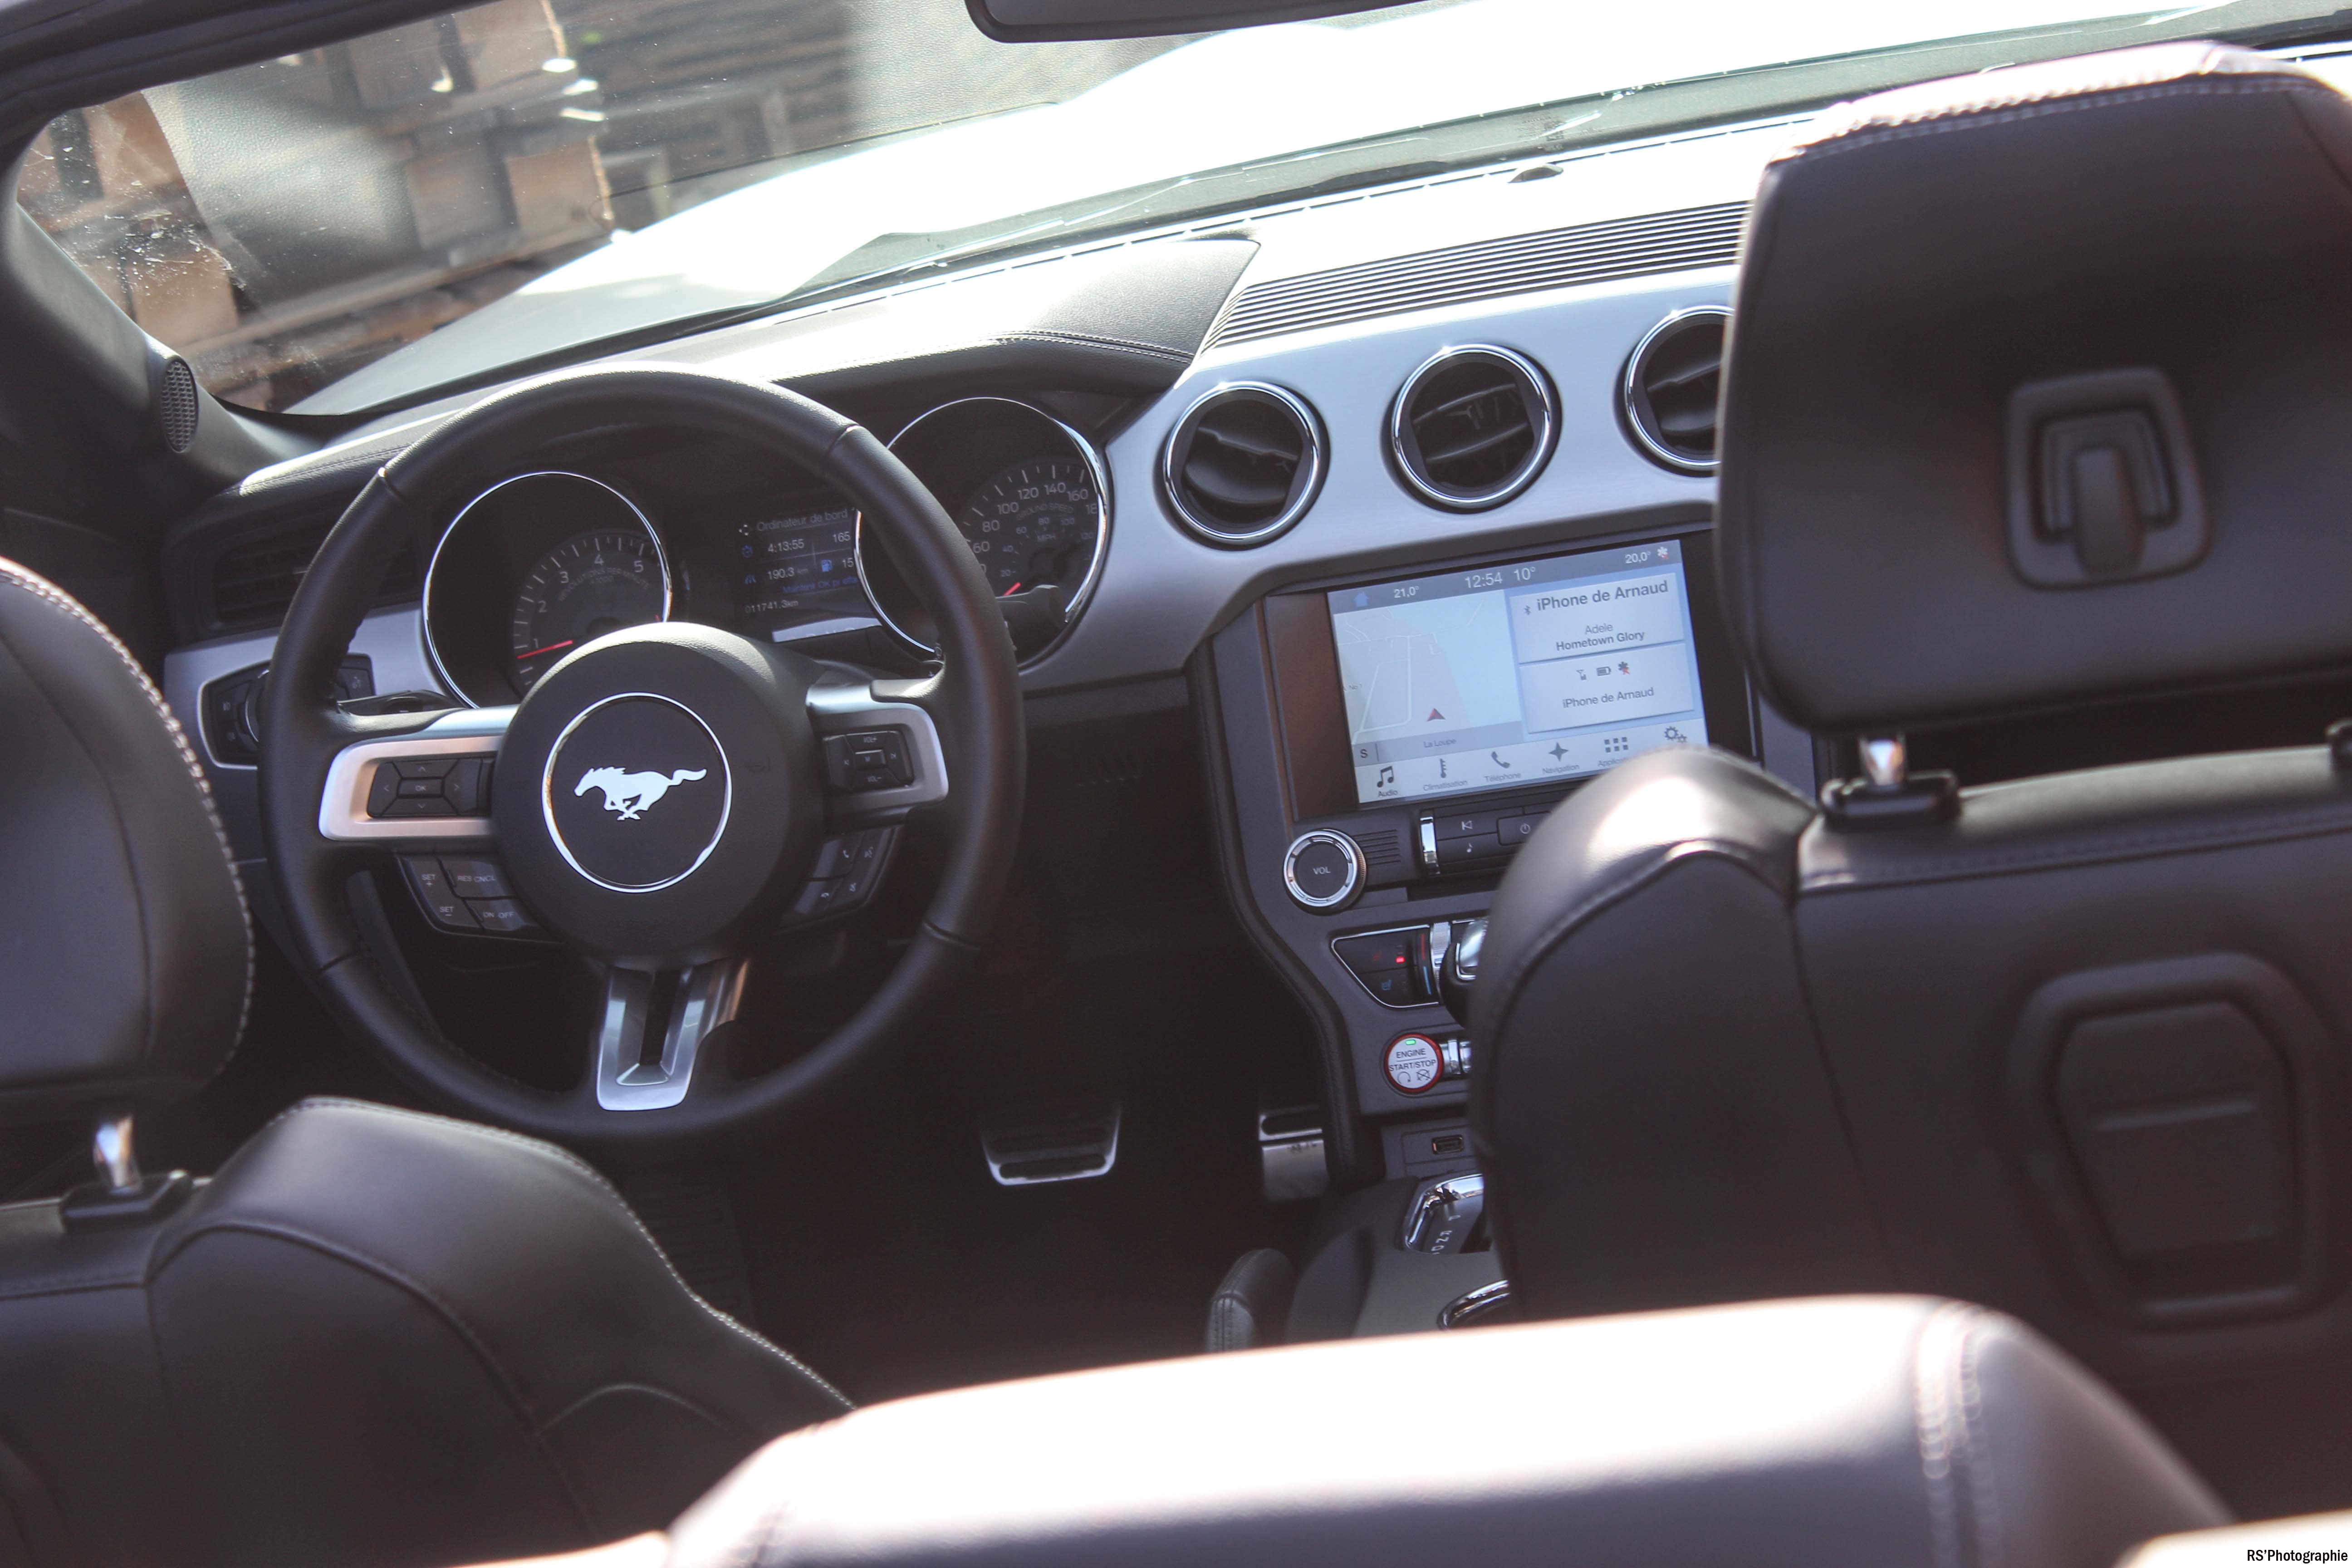 fordmustangeconvertible29-ford-mustang-convertible-ecoboost-intérieur-onboard-Arnaud Demasier-RSPhotographie